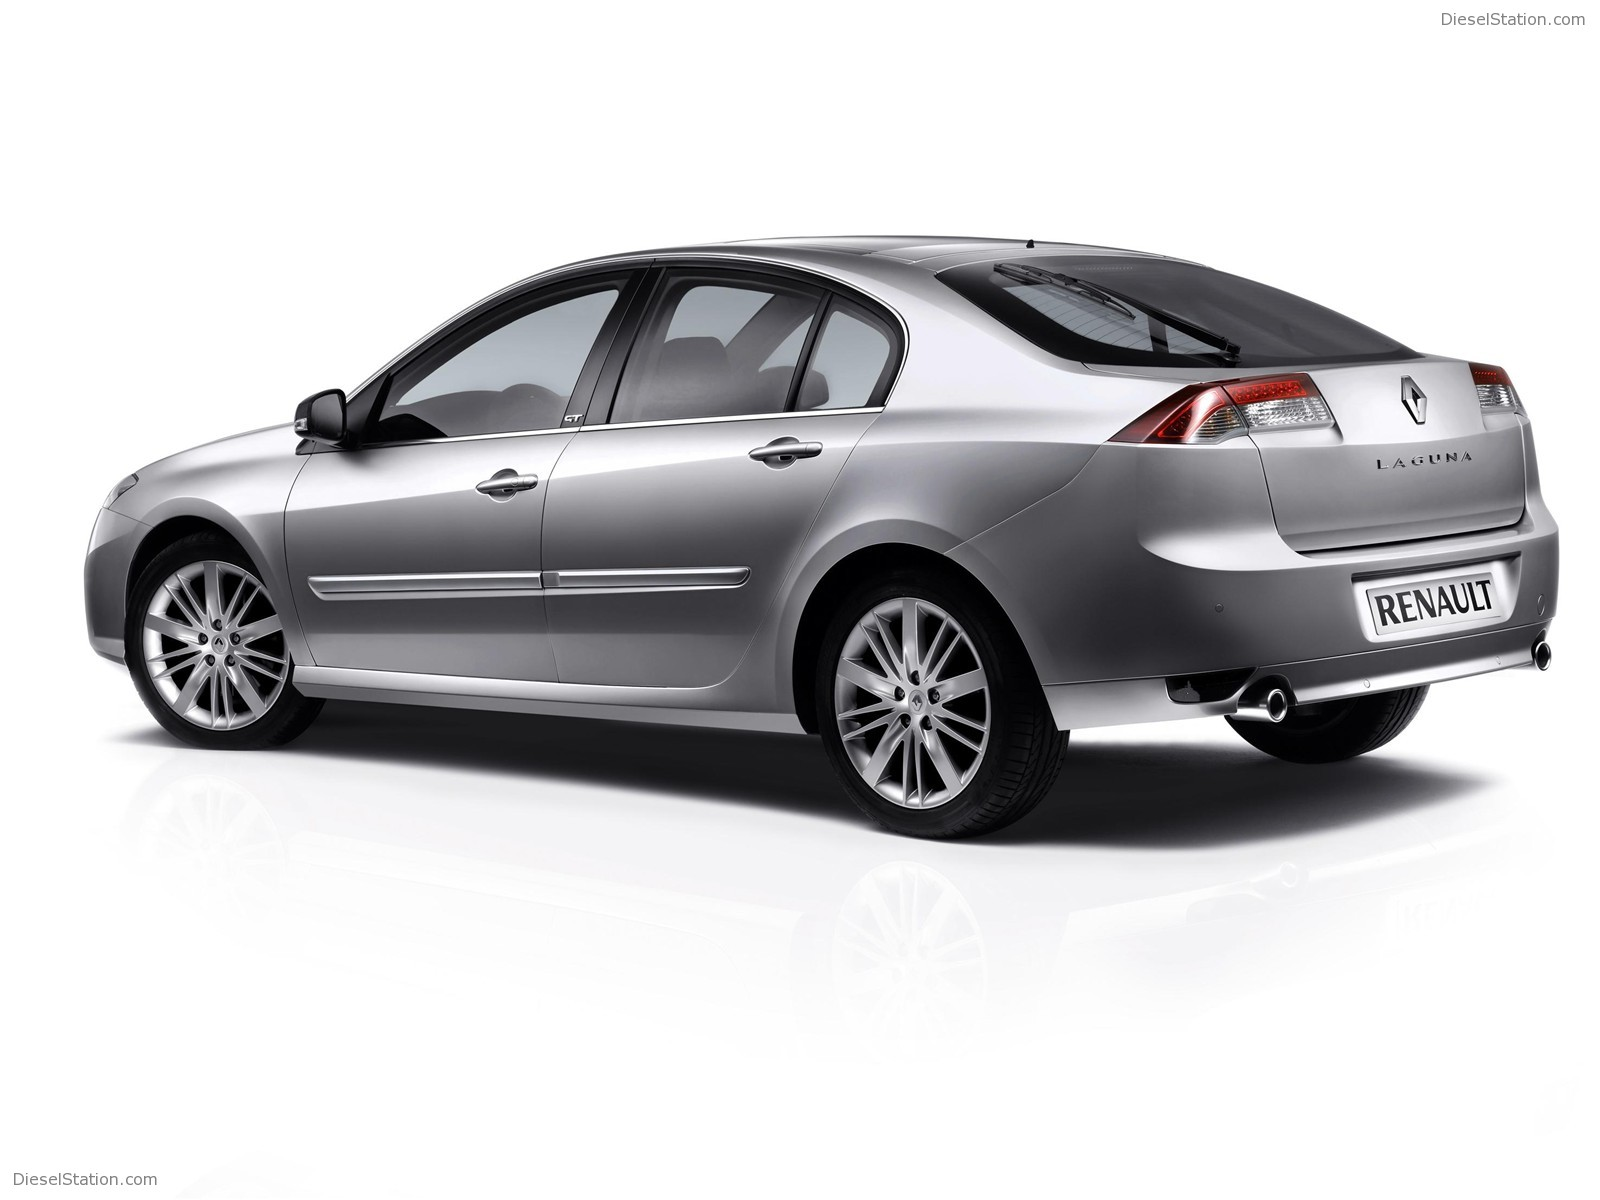 2009 renault laguna photos informations articles. Black Bedroom Furniture Sets. Home Design Ideas